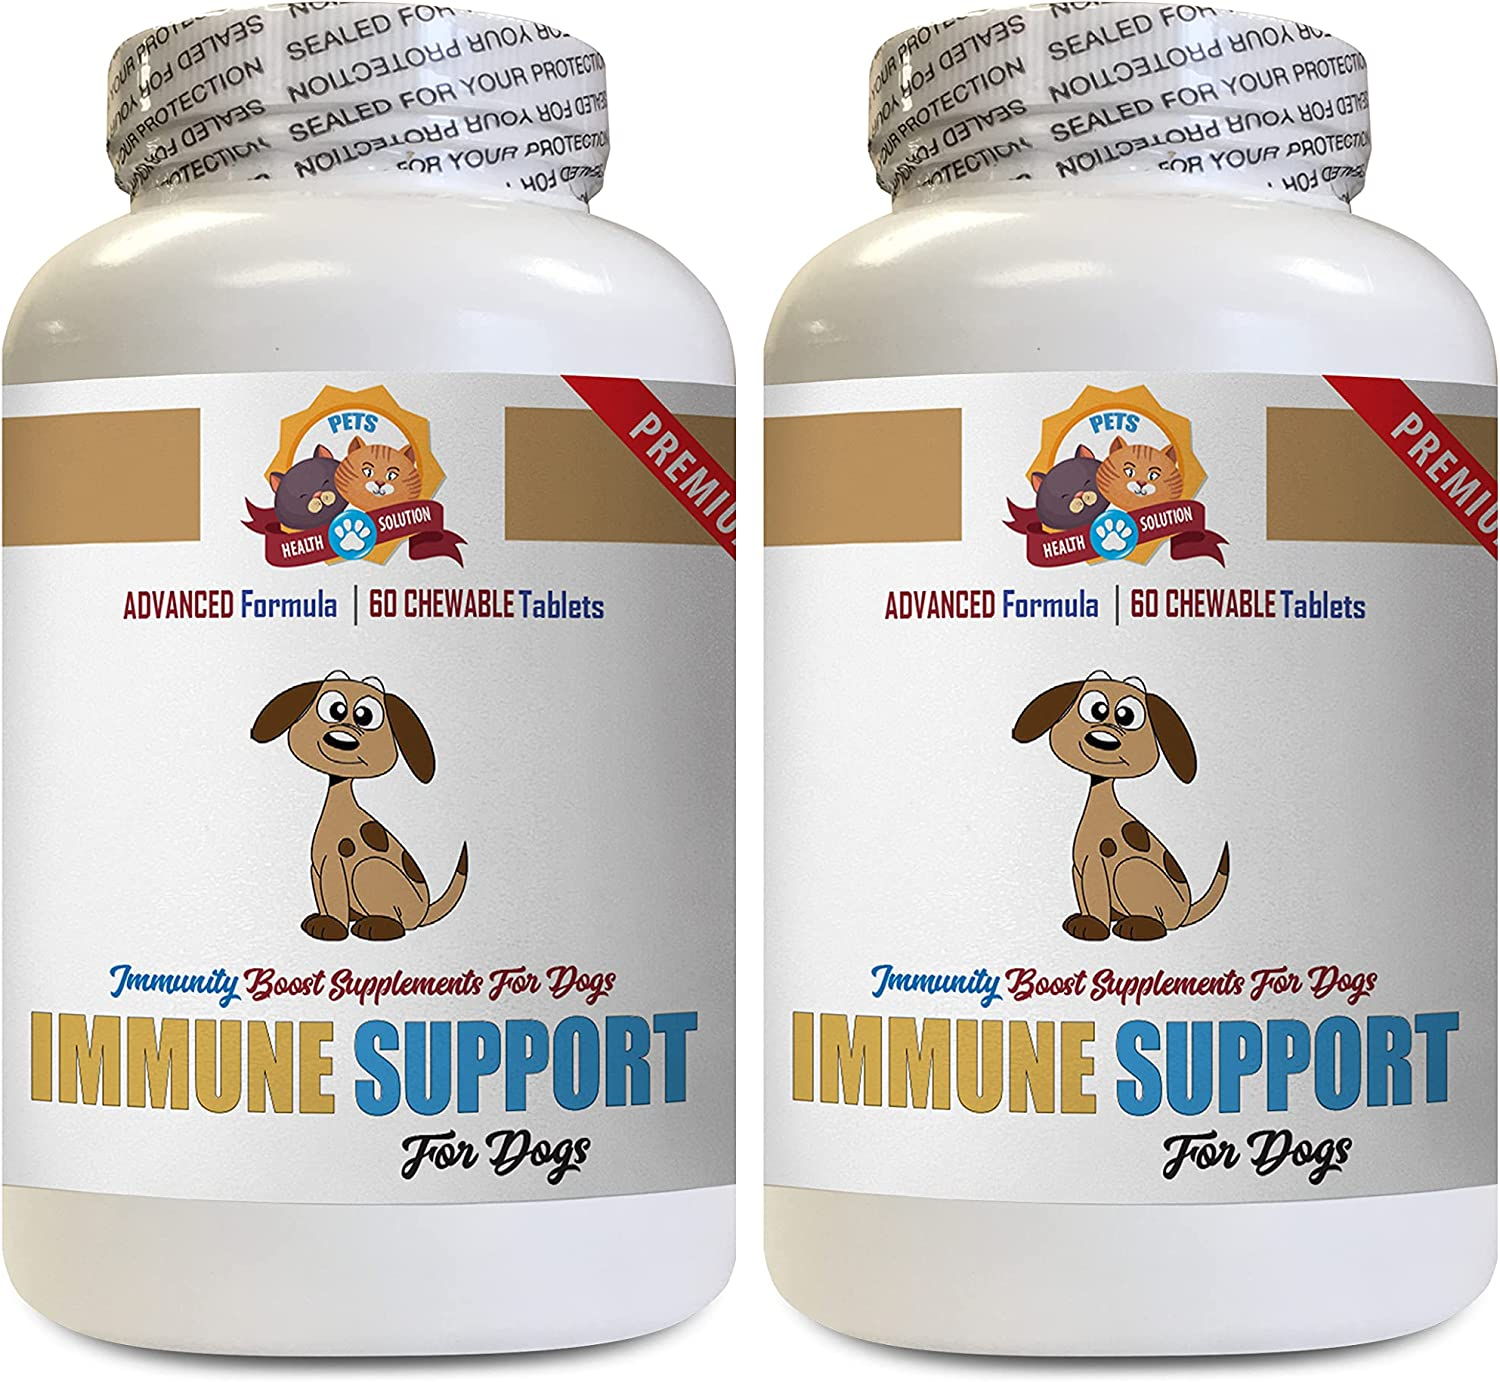 Dog Immune Portland Mall Booster Organic - Popular product and Support Health for